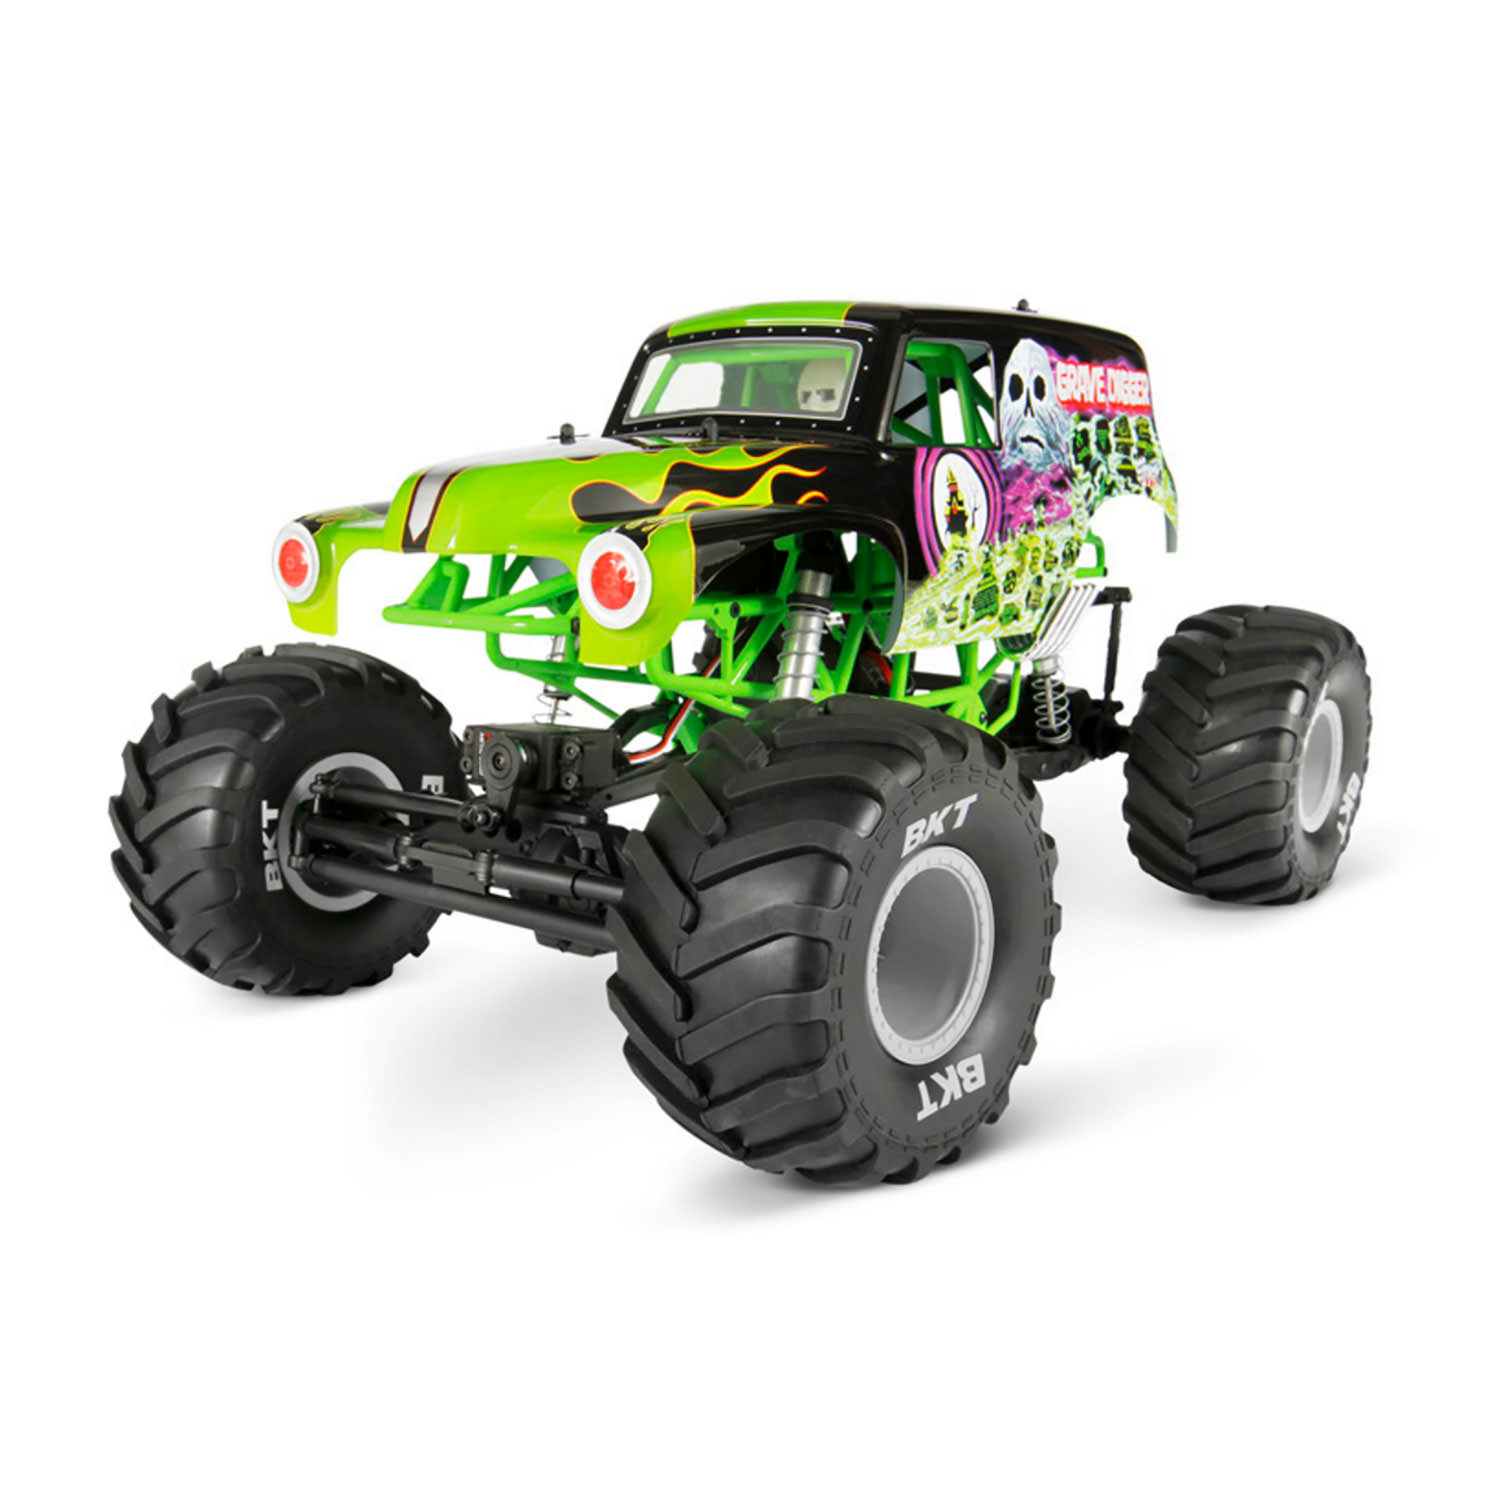 axial 90055 smt10 grave digger monster jam truck 1 10 scale electric 4wd at hobby warehouse. Black Bedroom Furniture Sets. Home Design Ideas